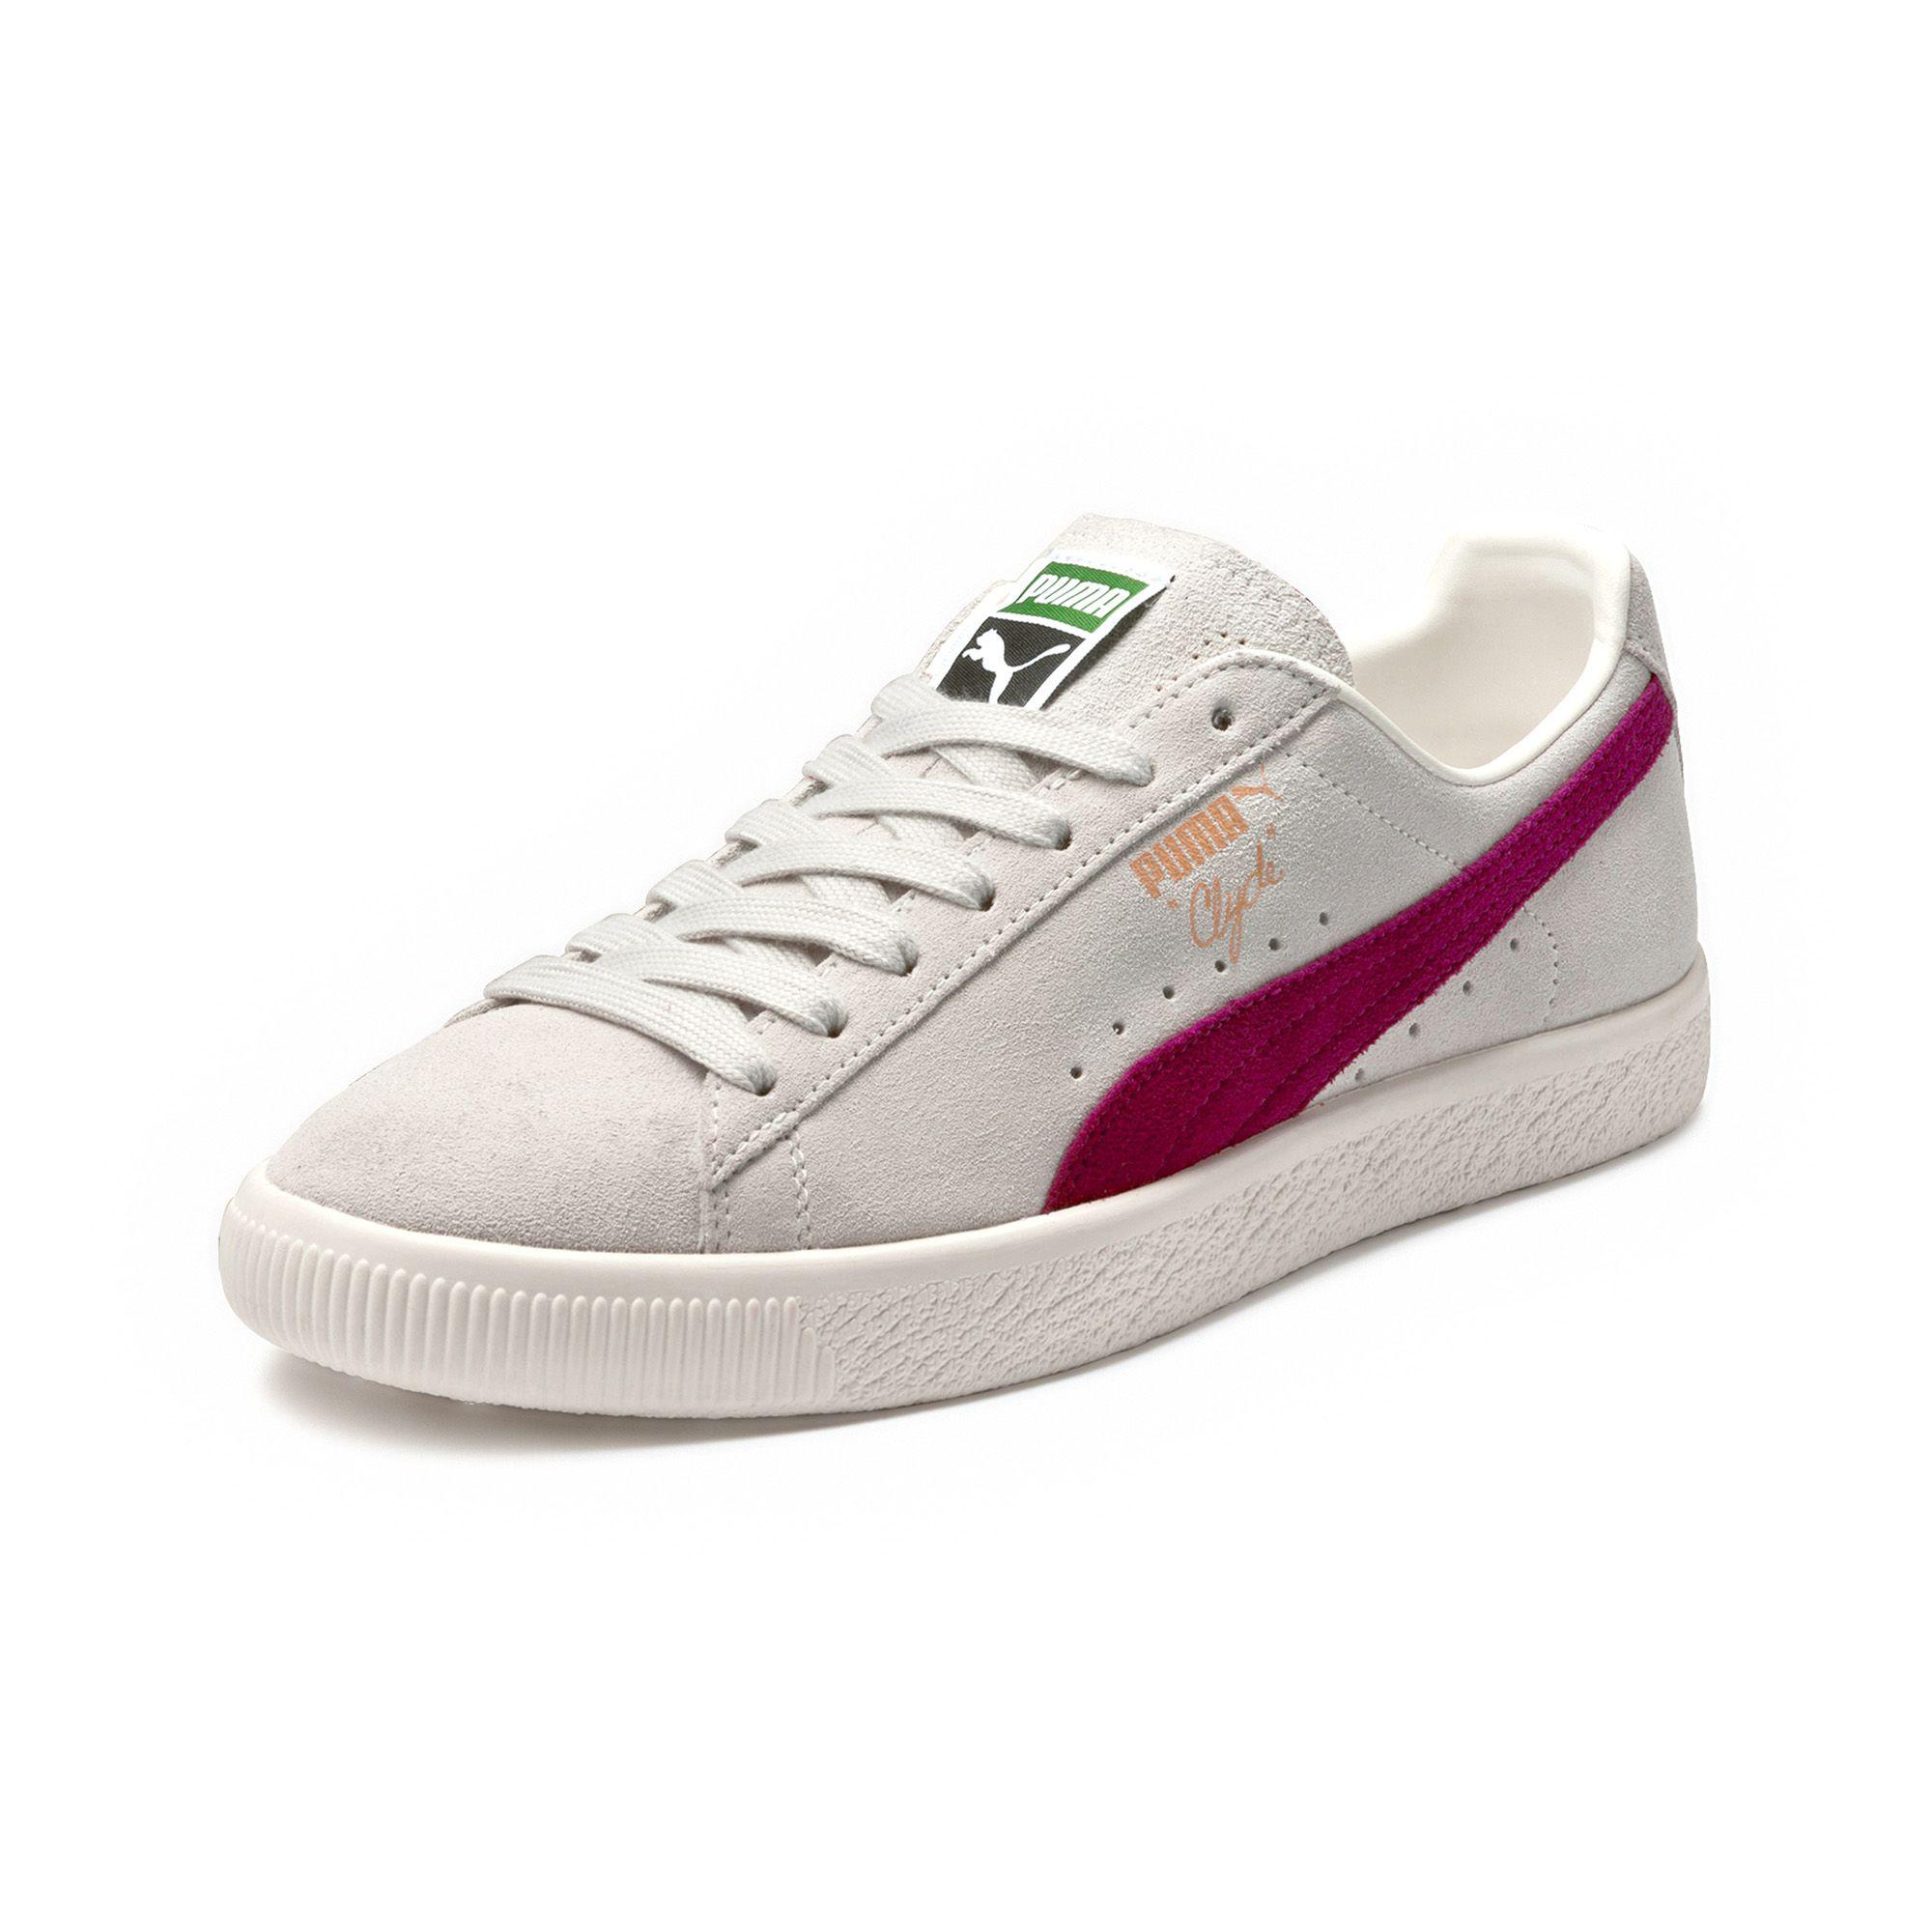 buy online a658c a0bf3 PUMA Multicolor Clyde From The Archive Sneakers for men